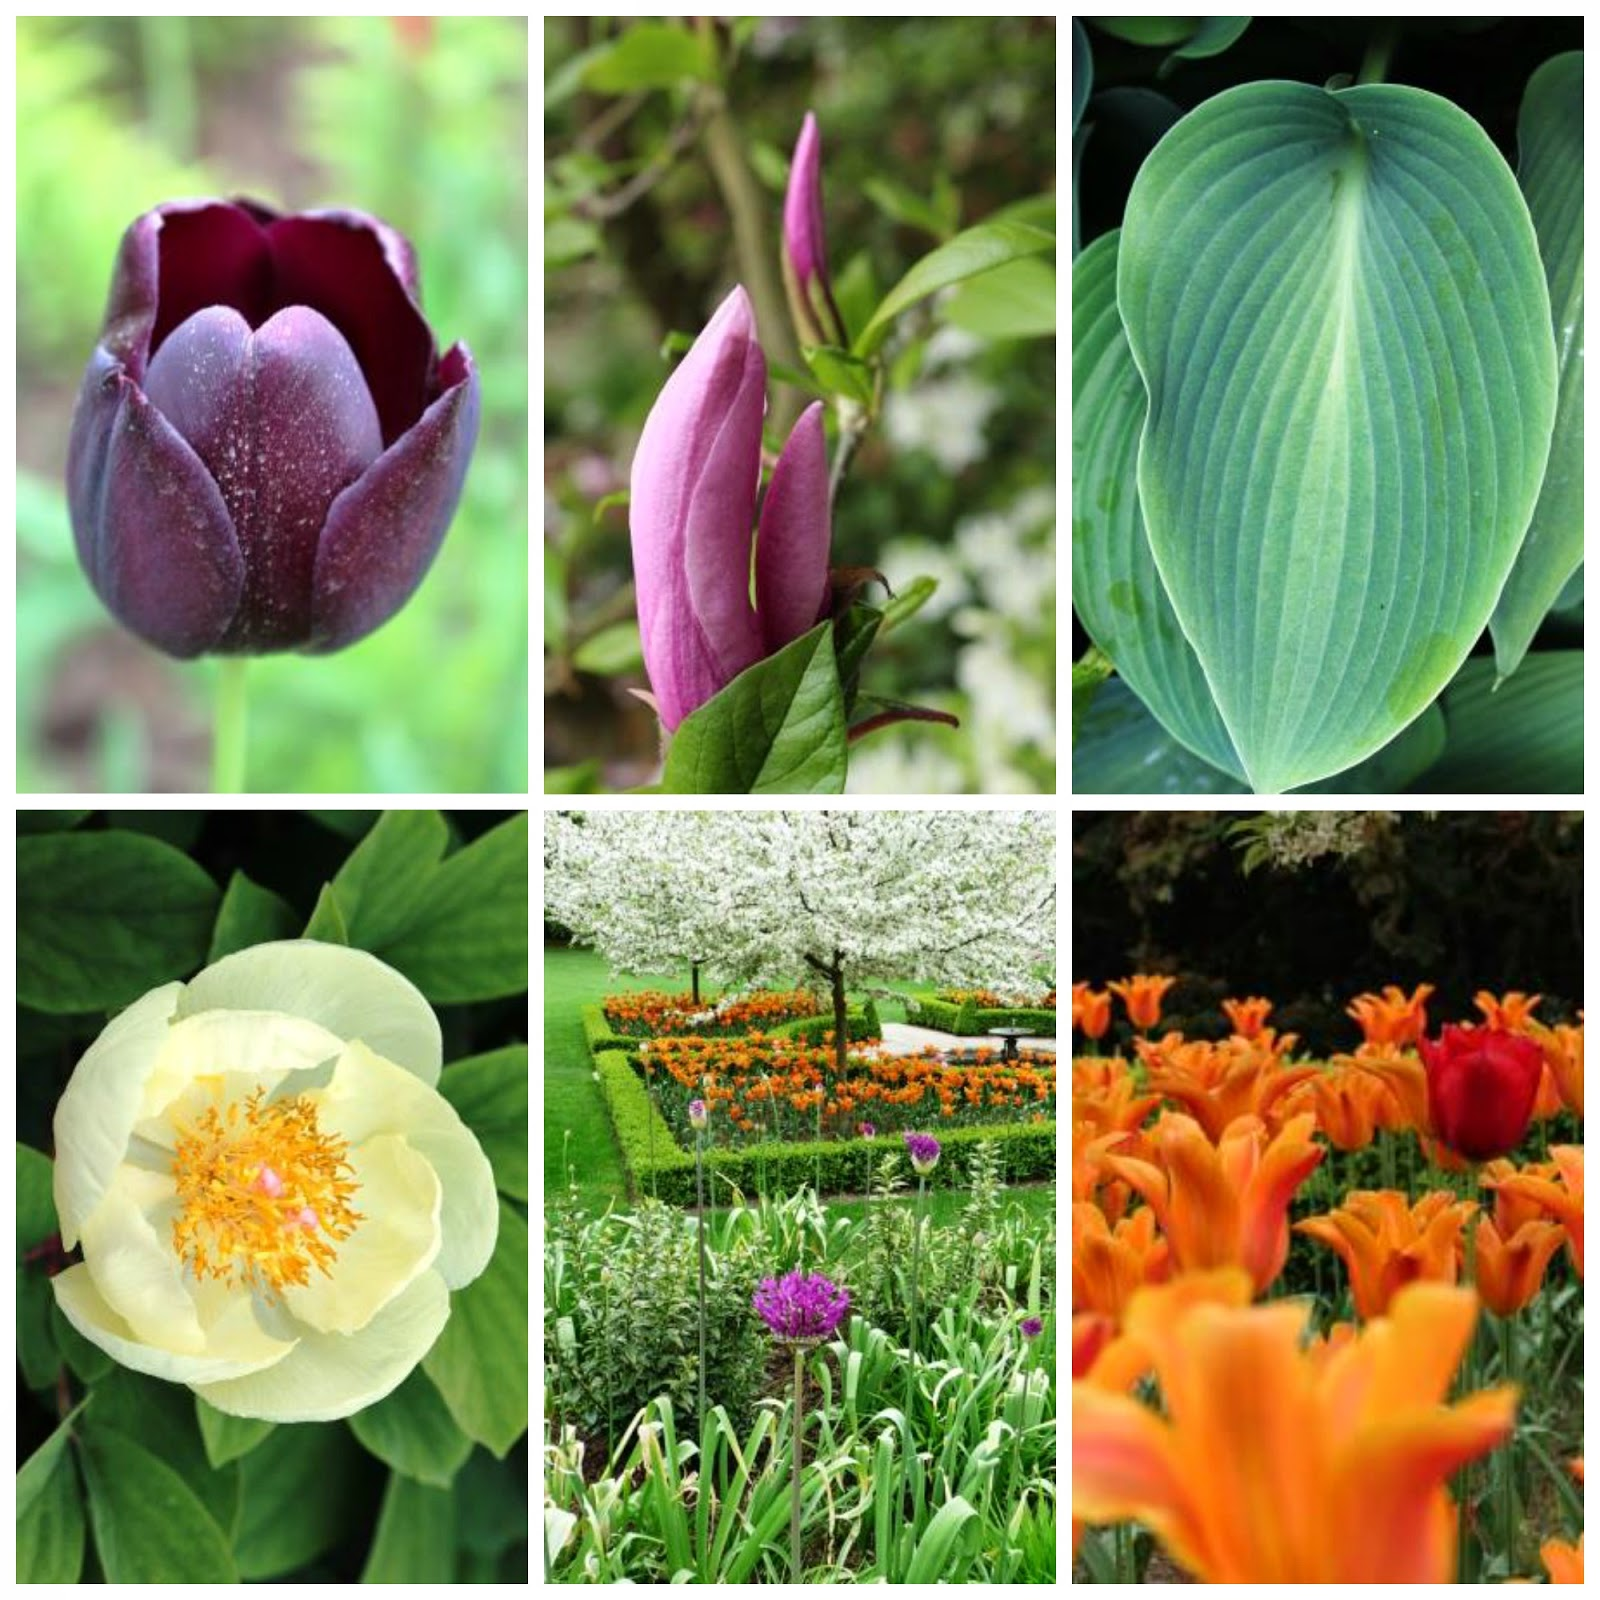 http://www.lifeofpottering.co.uk/2014/05/eglwysbach-north-wales-bodnant-gardens.html